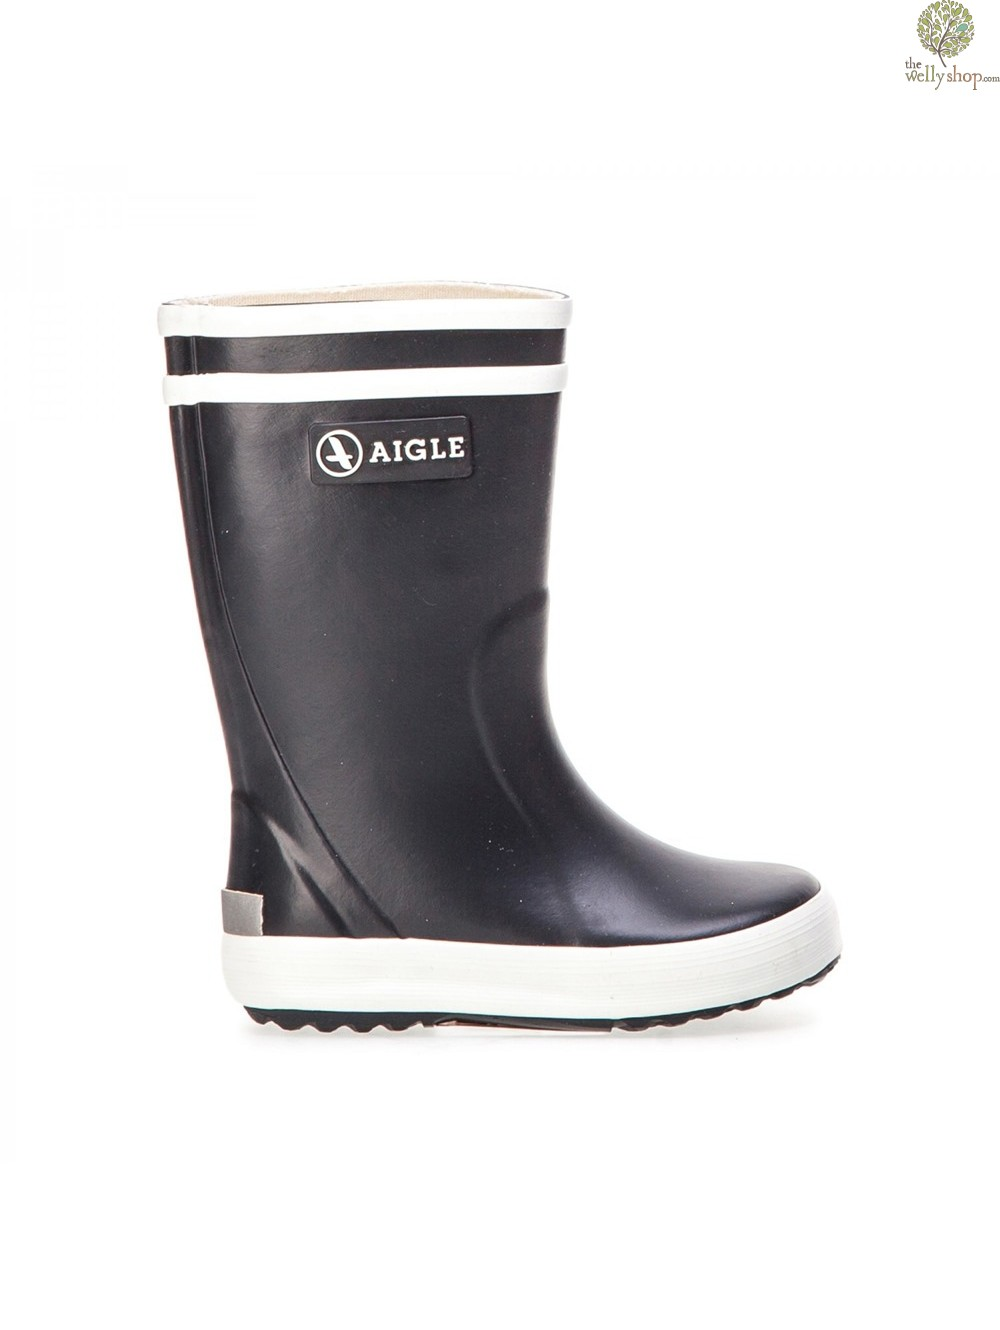 280f7eb98 Aigle Lollypop Childrens Wellies - Navy Blue/White